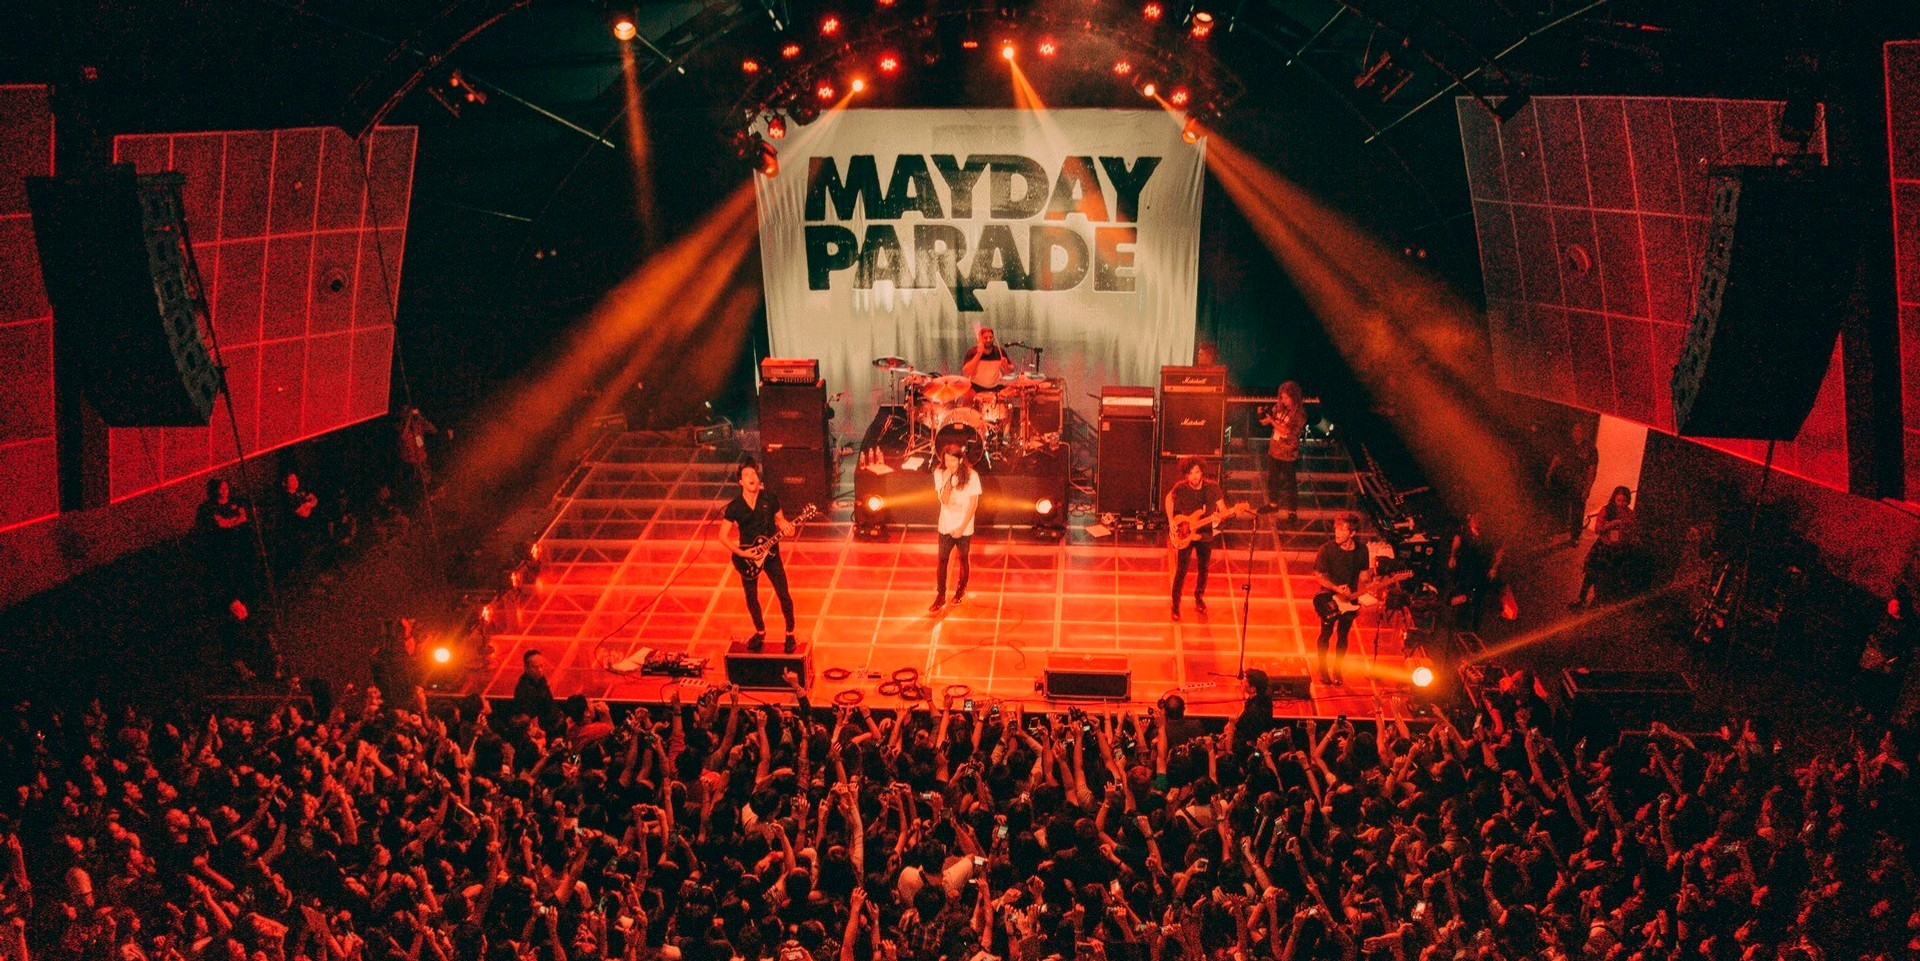 Mayday Parade to bring A Lesson in Romantics 10 year anniversary tour to Manila